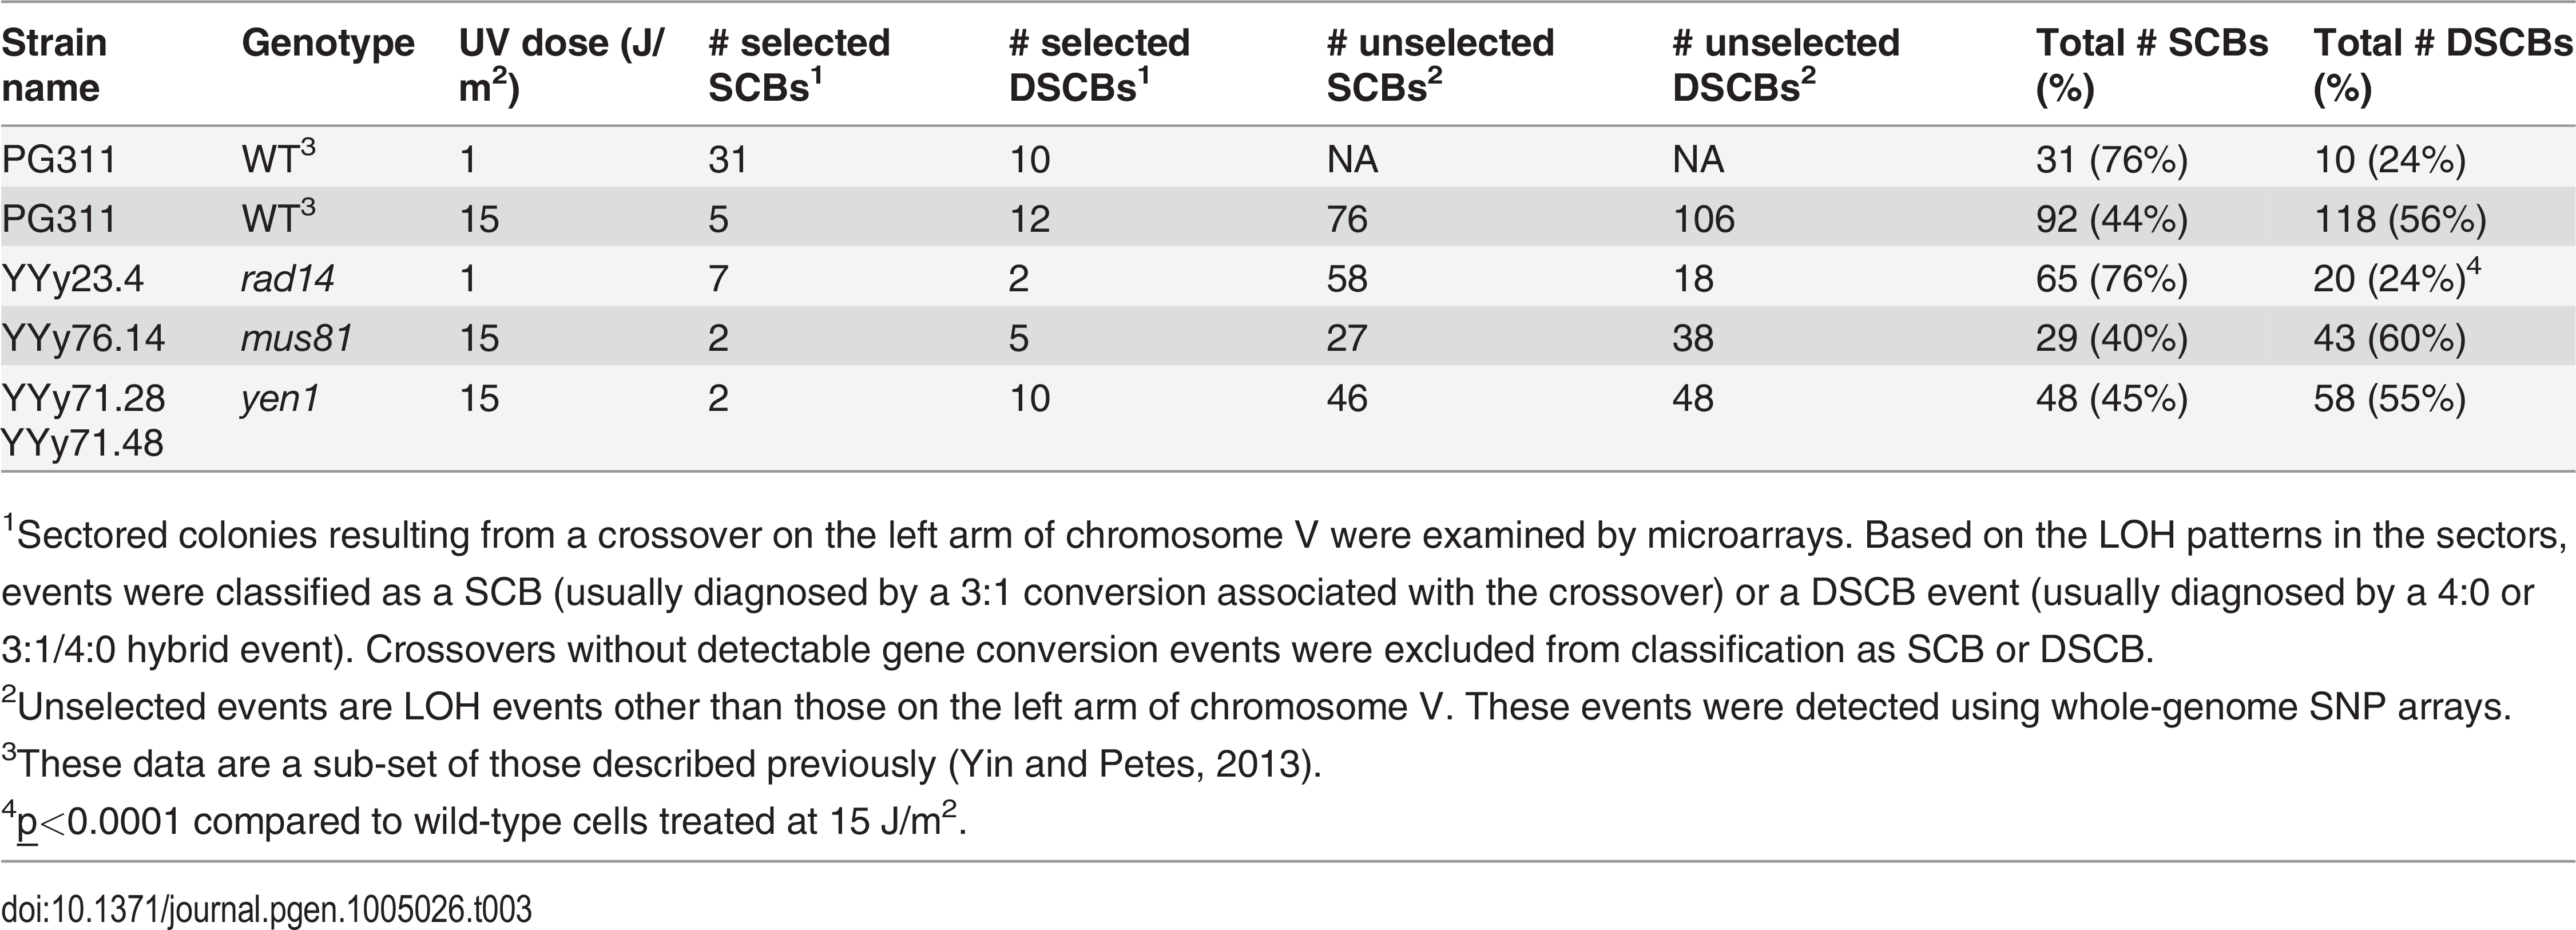 Numbers of single-chromatid breaks (SCBs) and double sister-chromatid breaks (DSCBs) induced by UV in G1-synchronized cells.